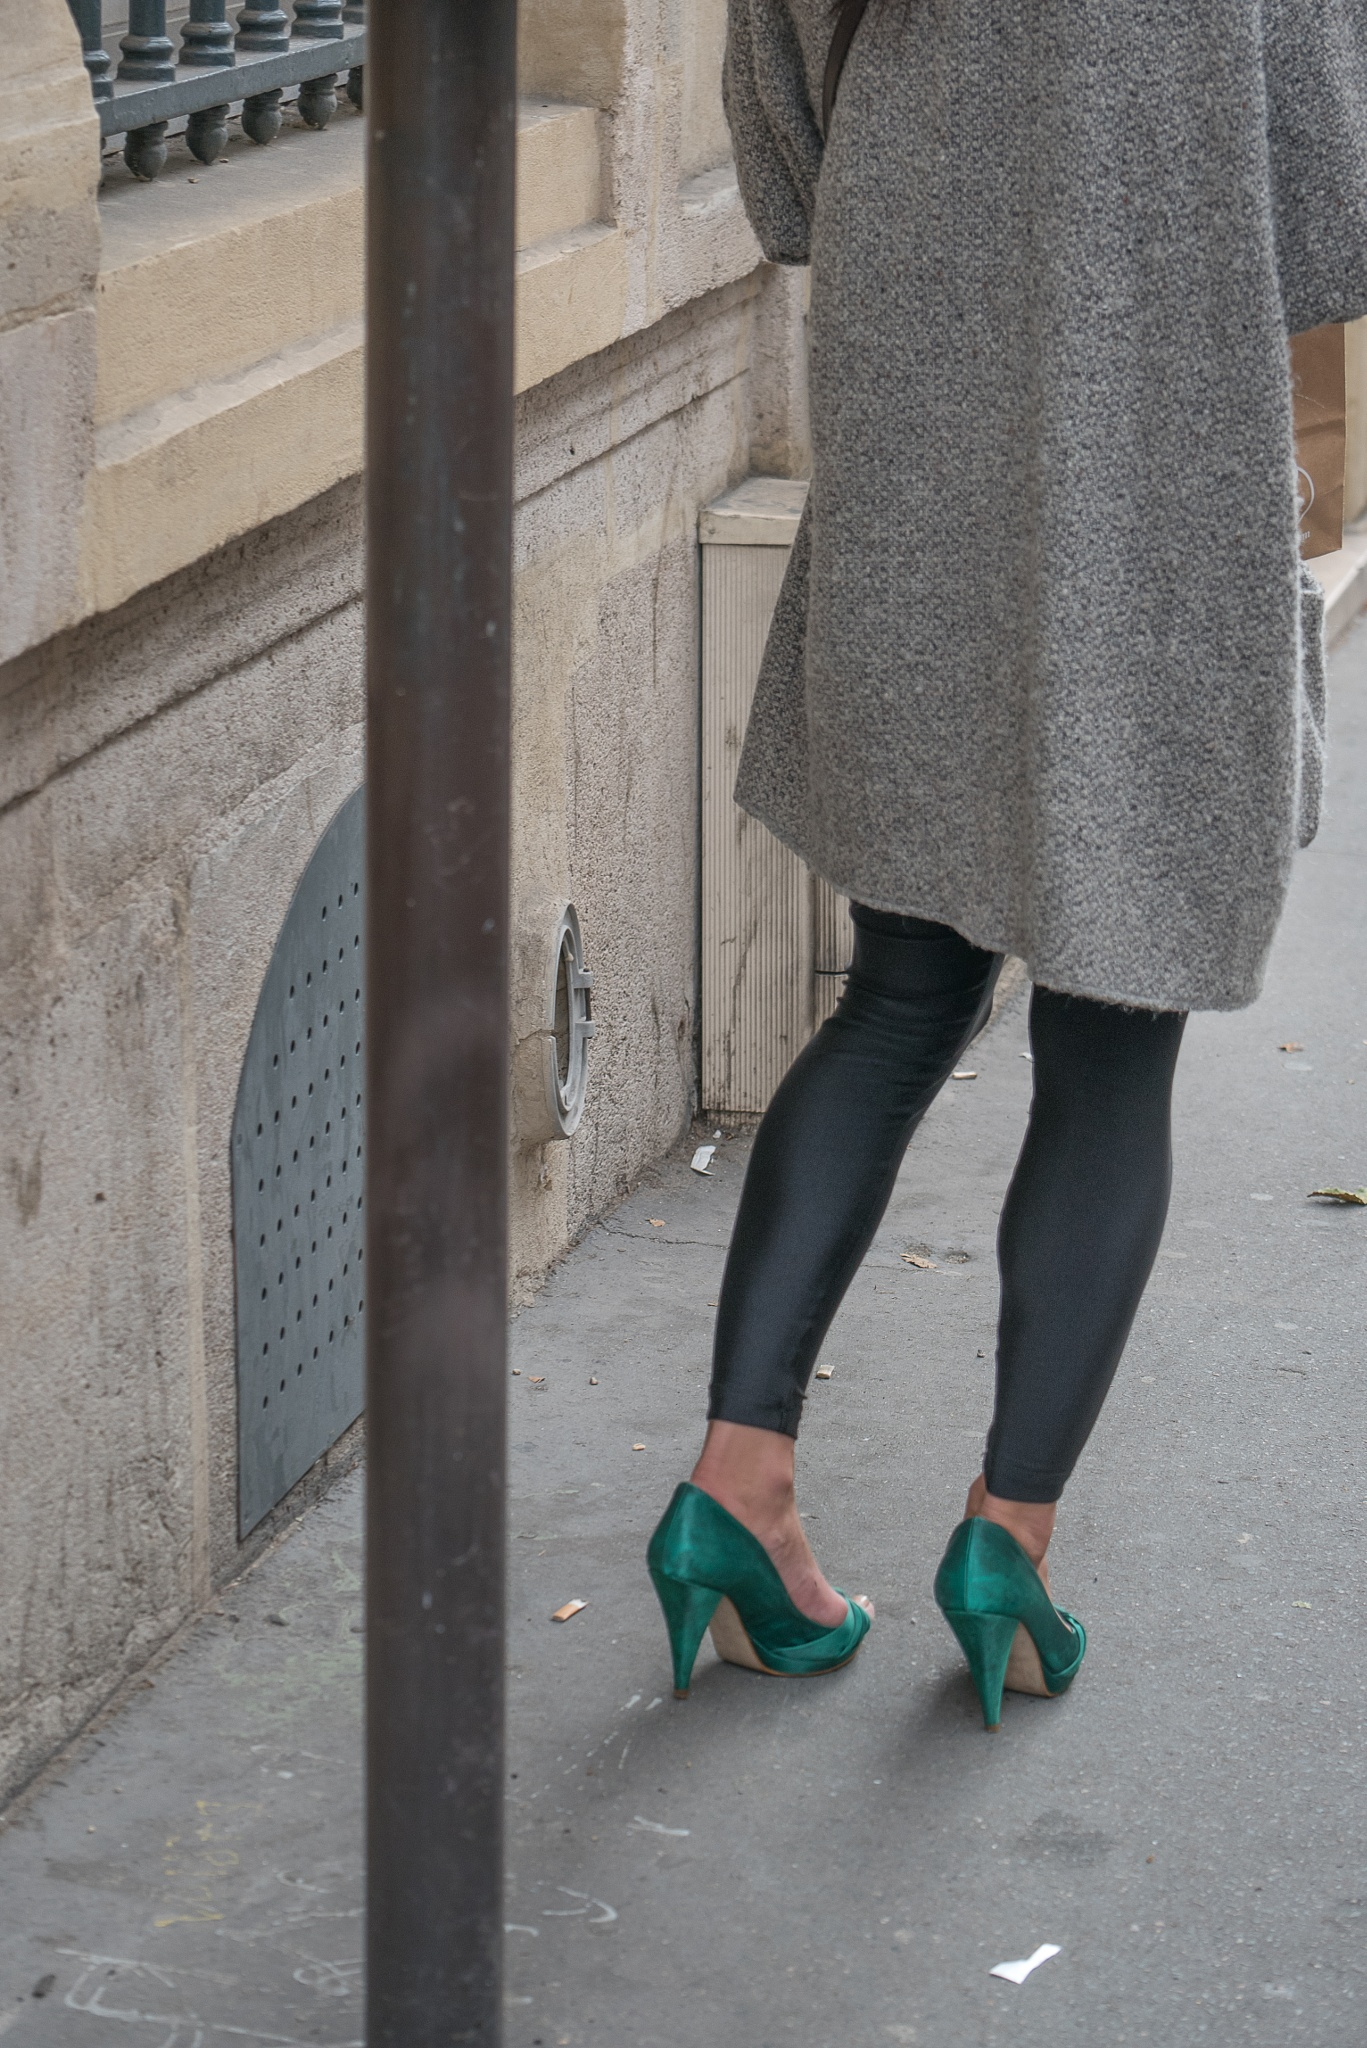 Bright green shoes in Paris by Martine de Lajudie